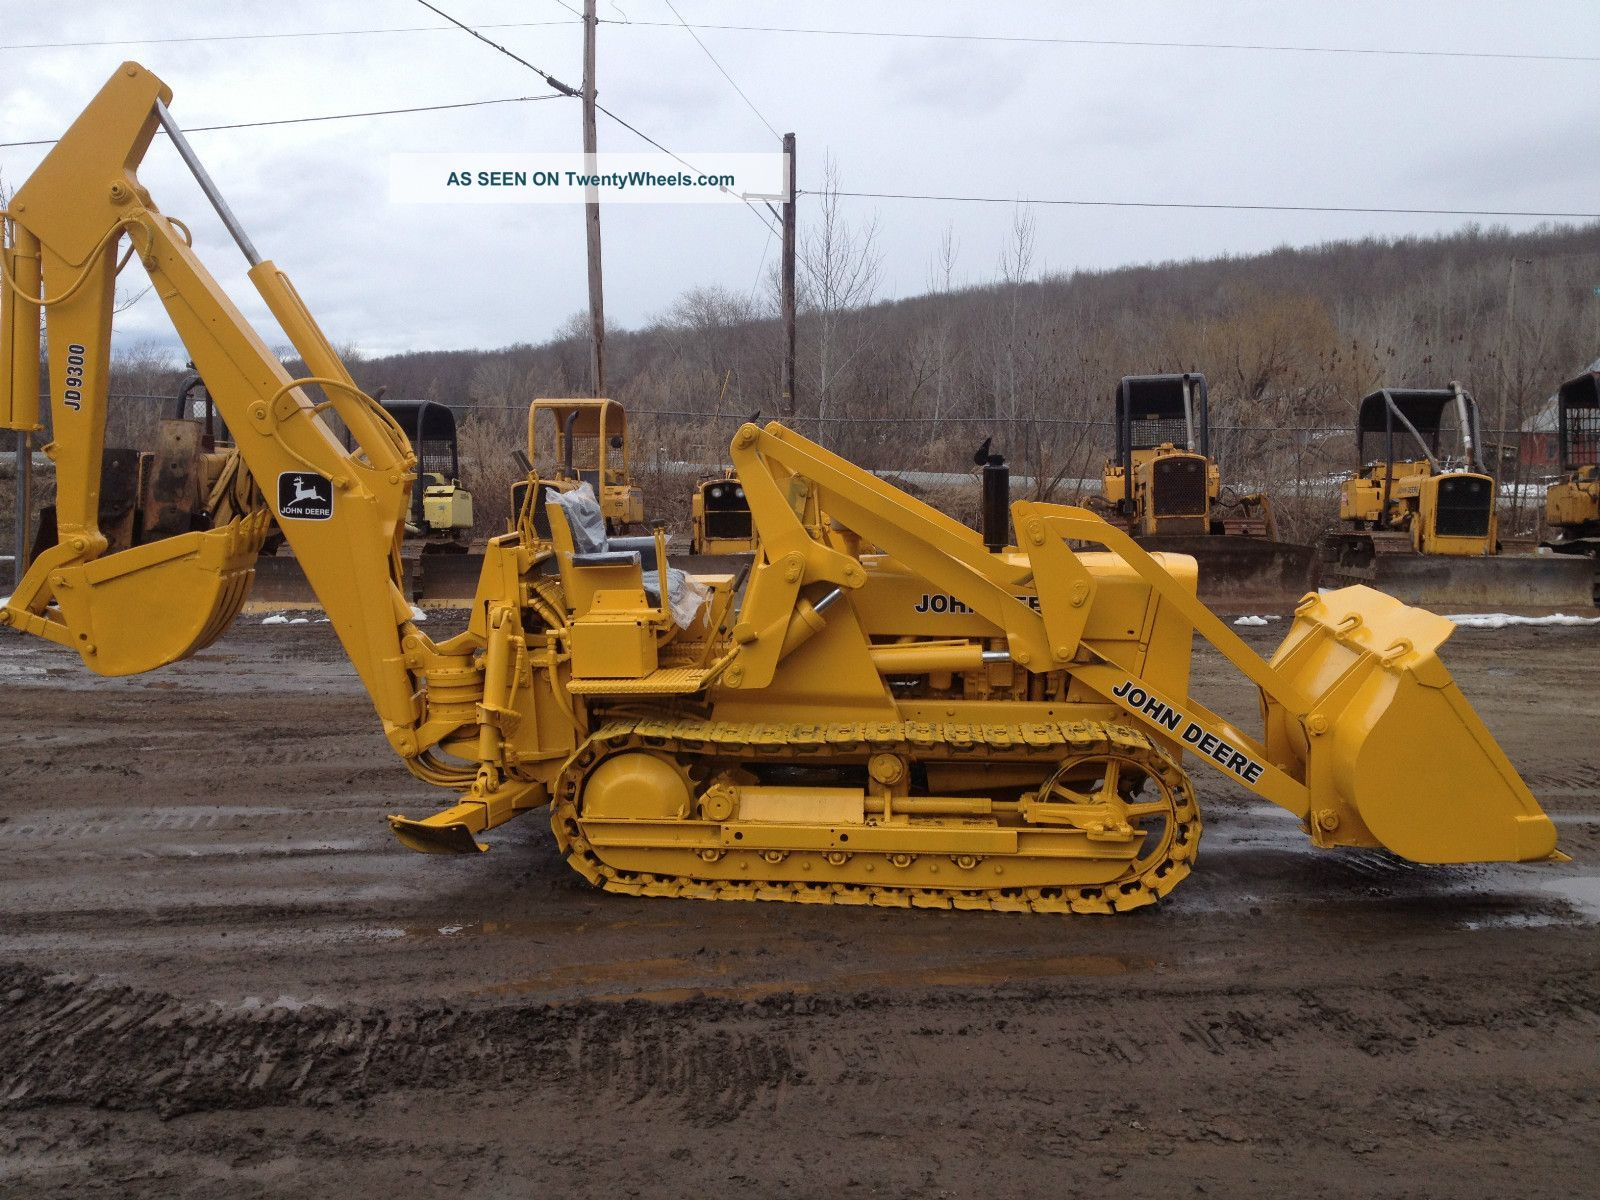 BOUNDARY builds replacement parts for bulldozers made by